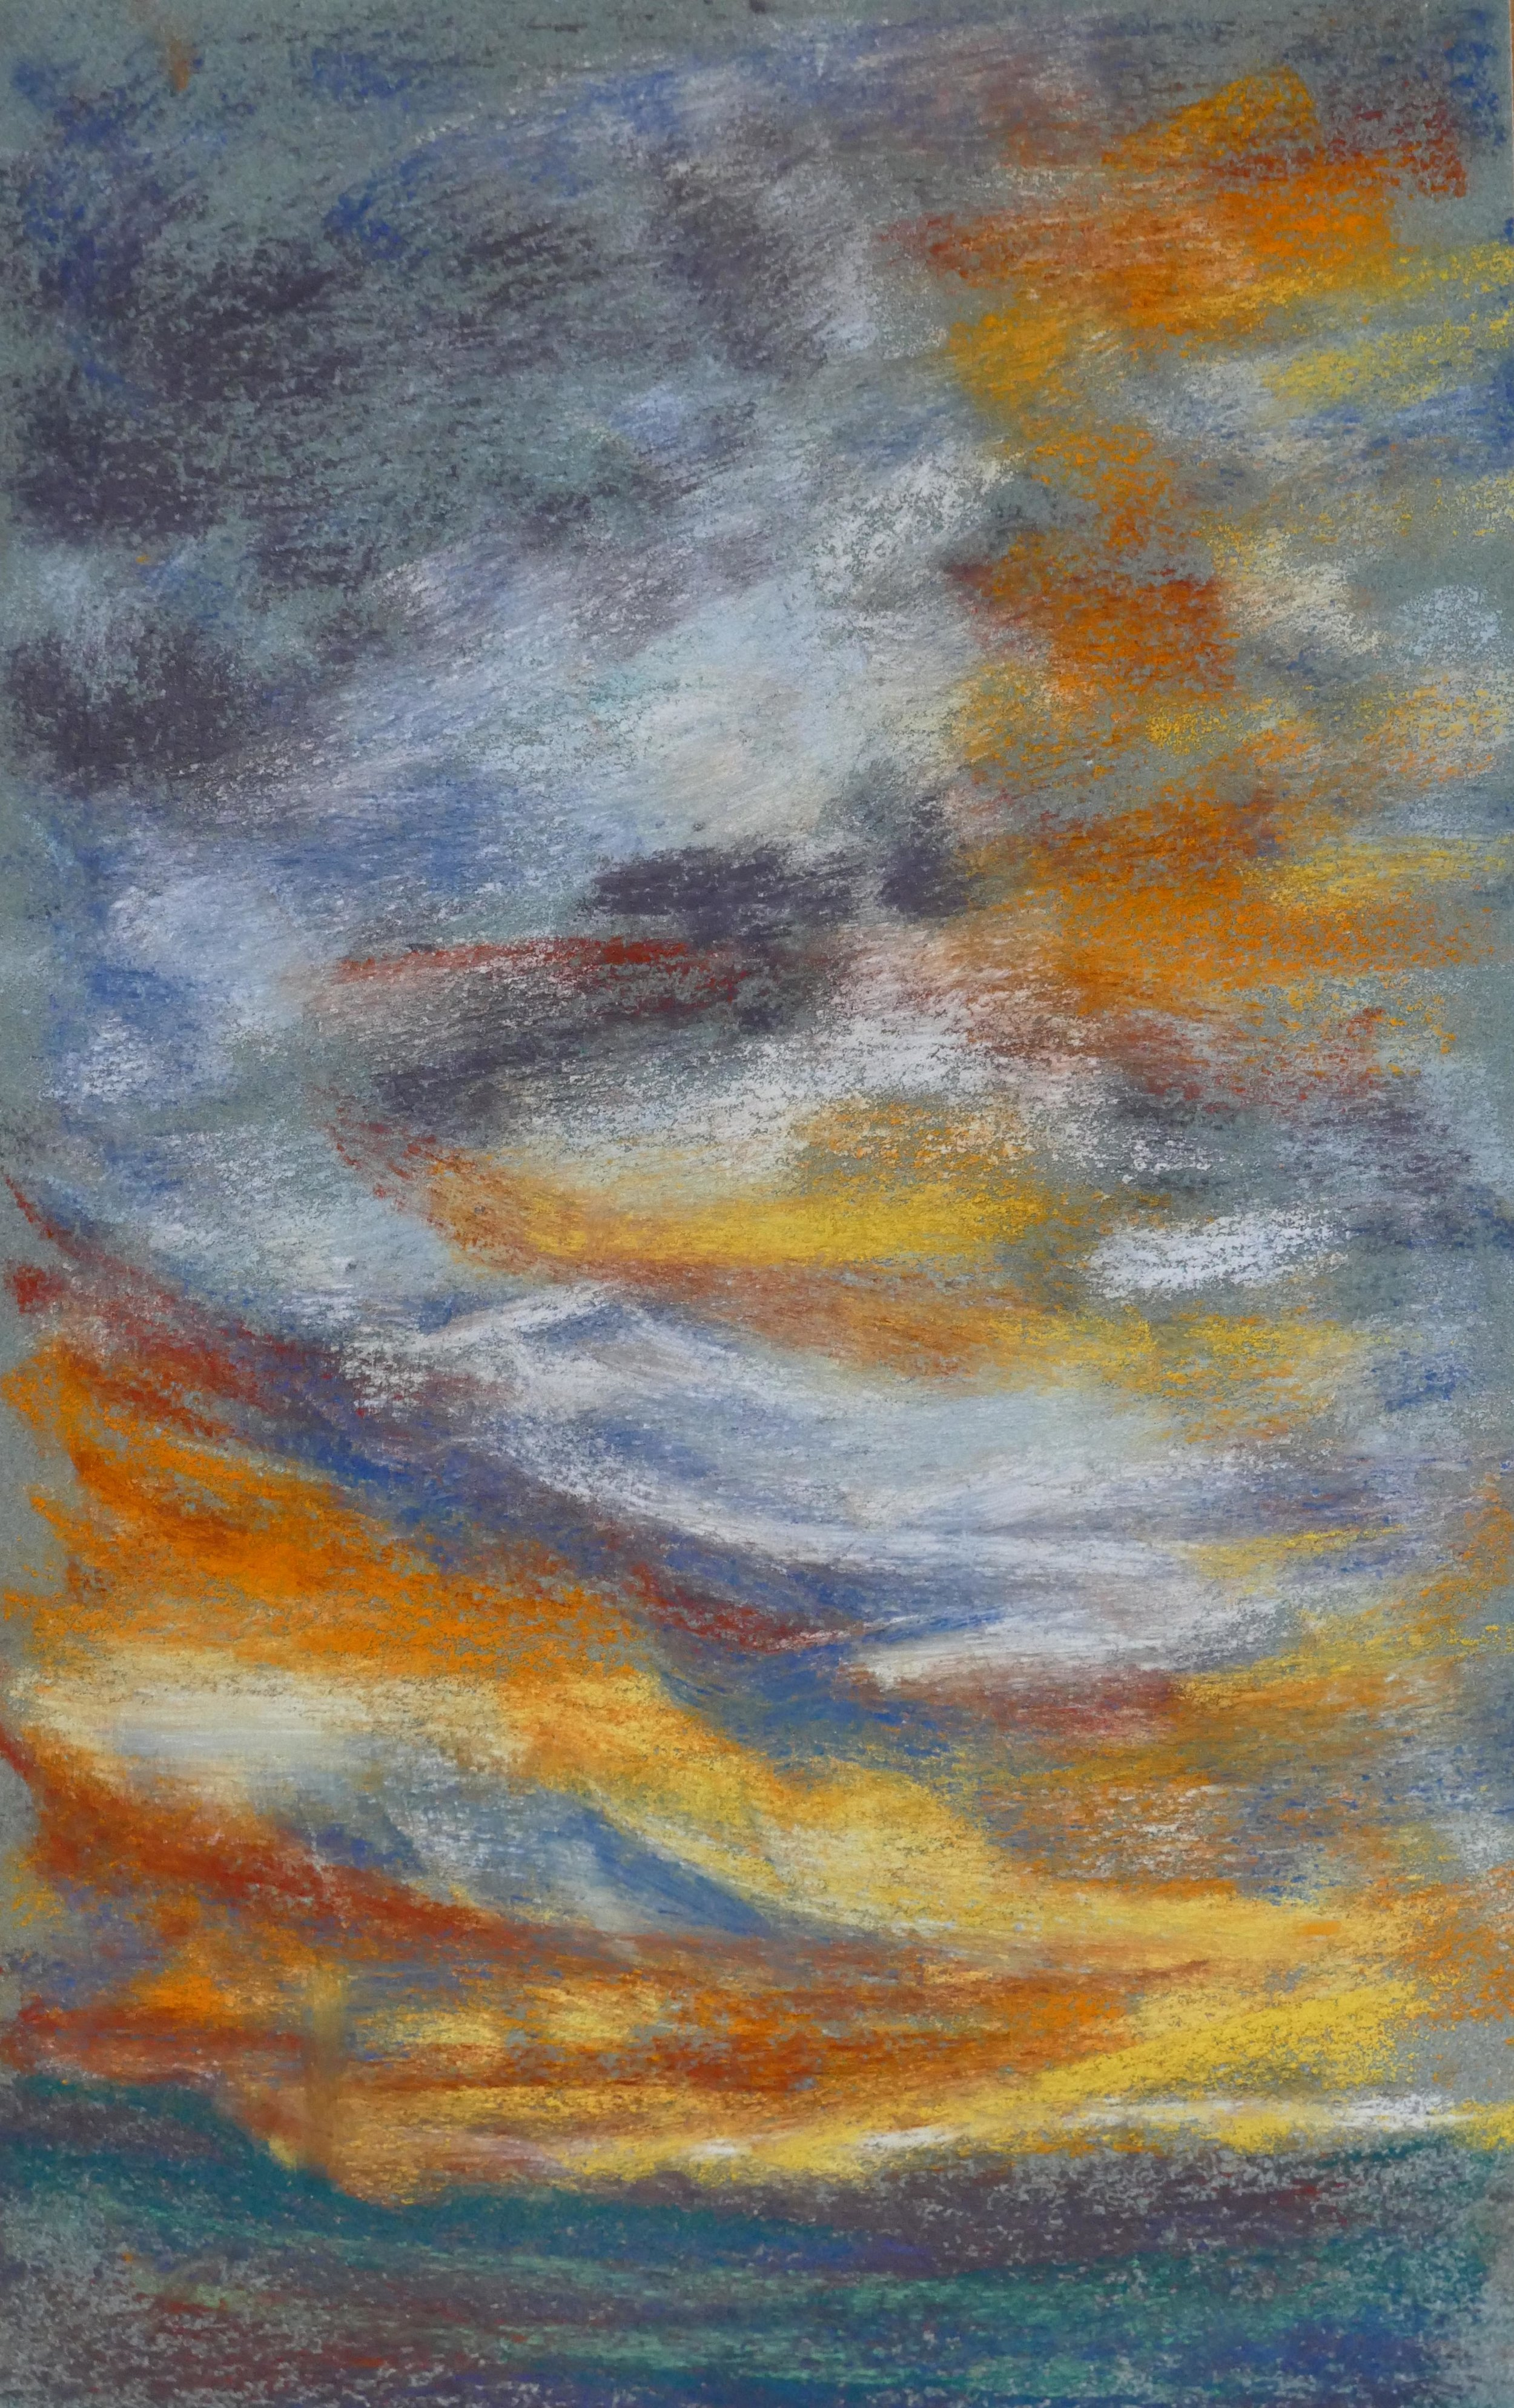 Print 11 - Sky in Pastels - Size: 180 x 286